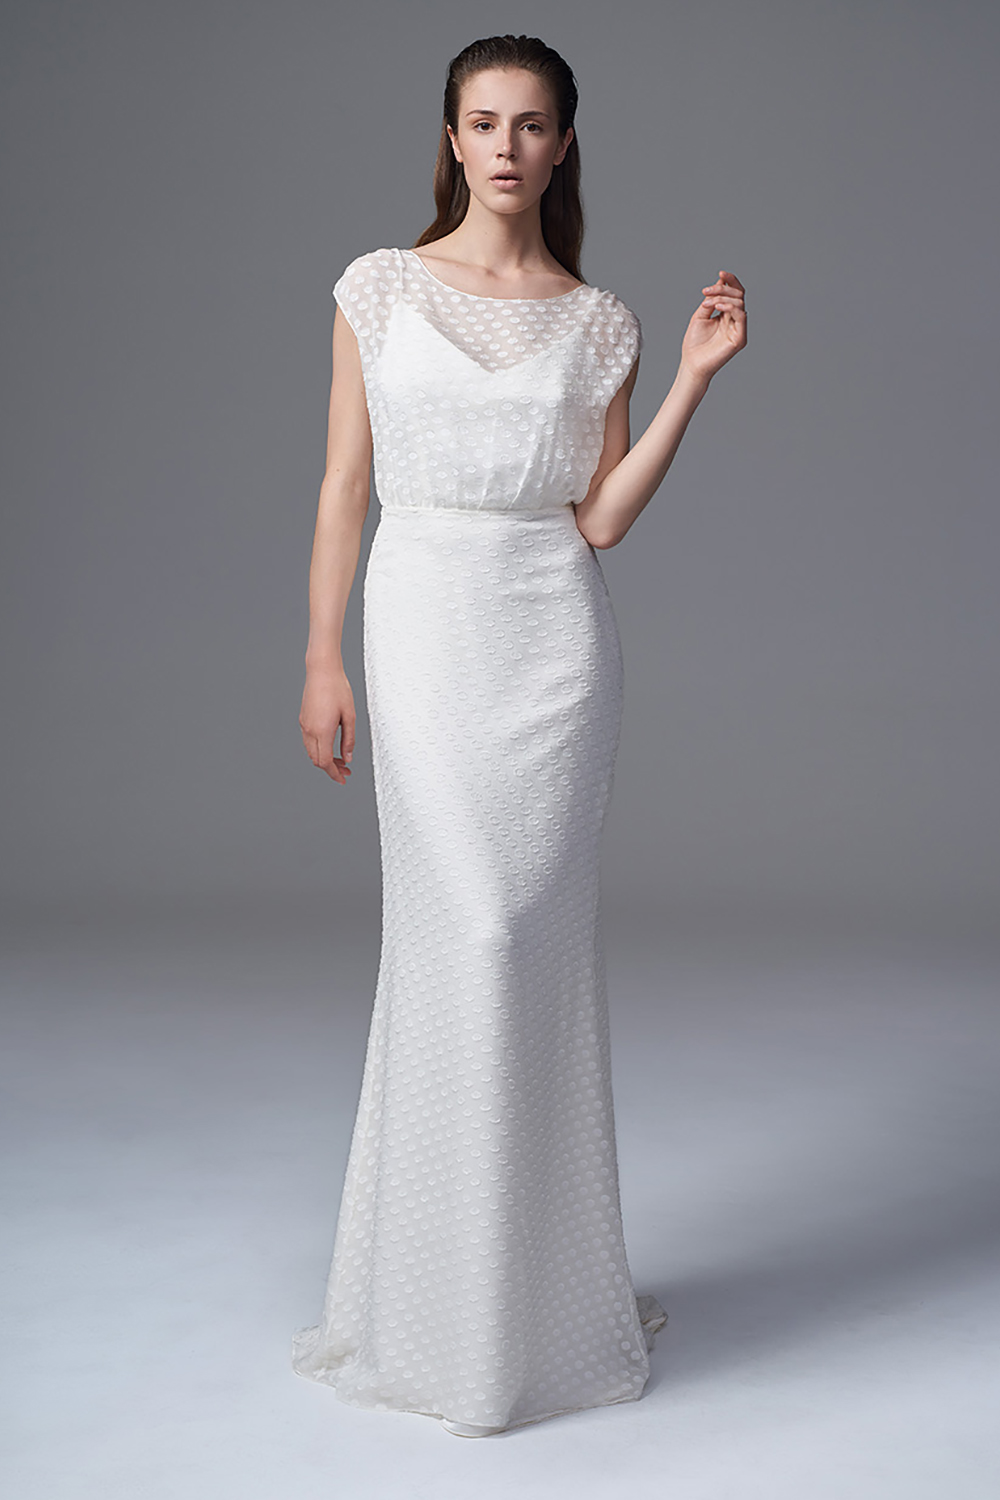 THE CHLOE POLKA DOT CHIFFON DRESS WITH SLASH NECK AND GODET TRAIN. BRIDAL WEDDING DRESS BY HALFPENNY LONDON